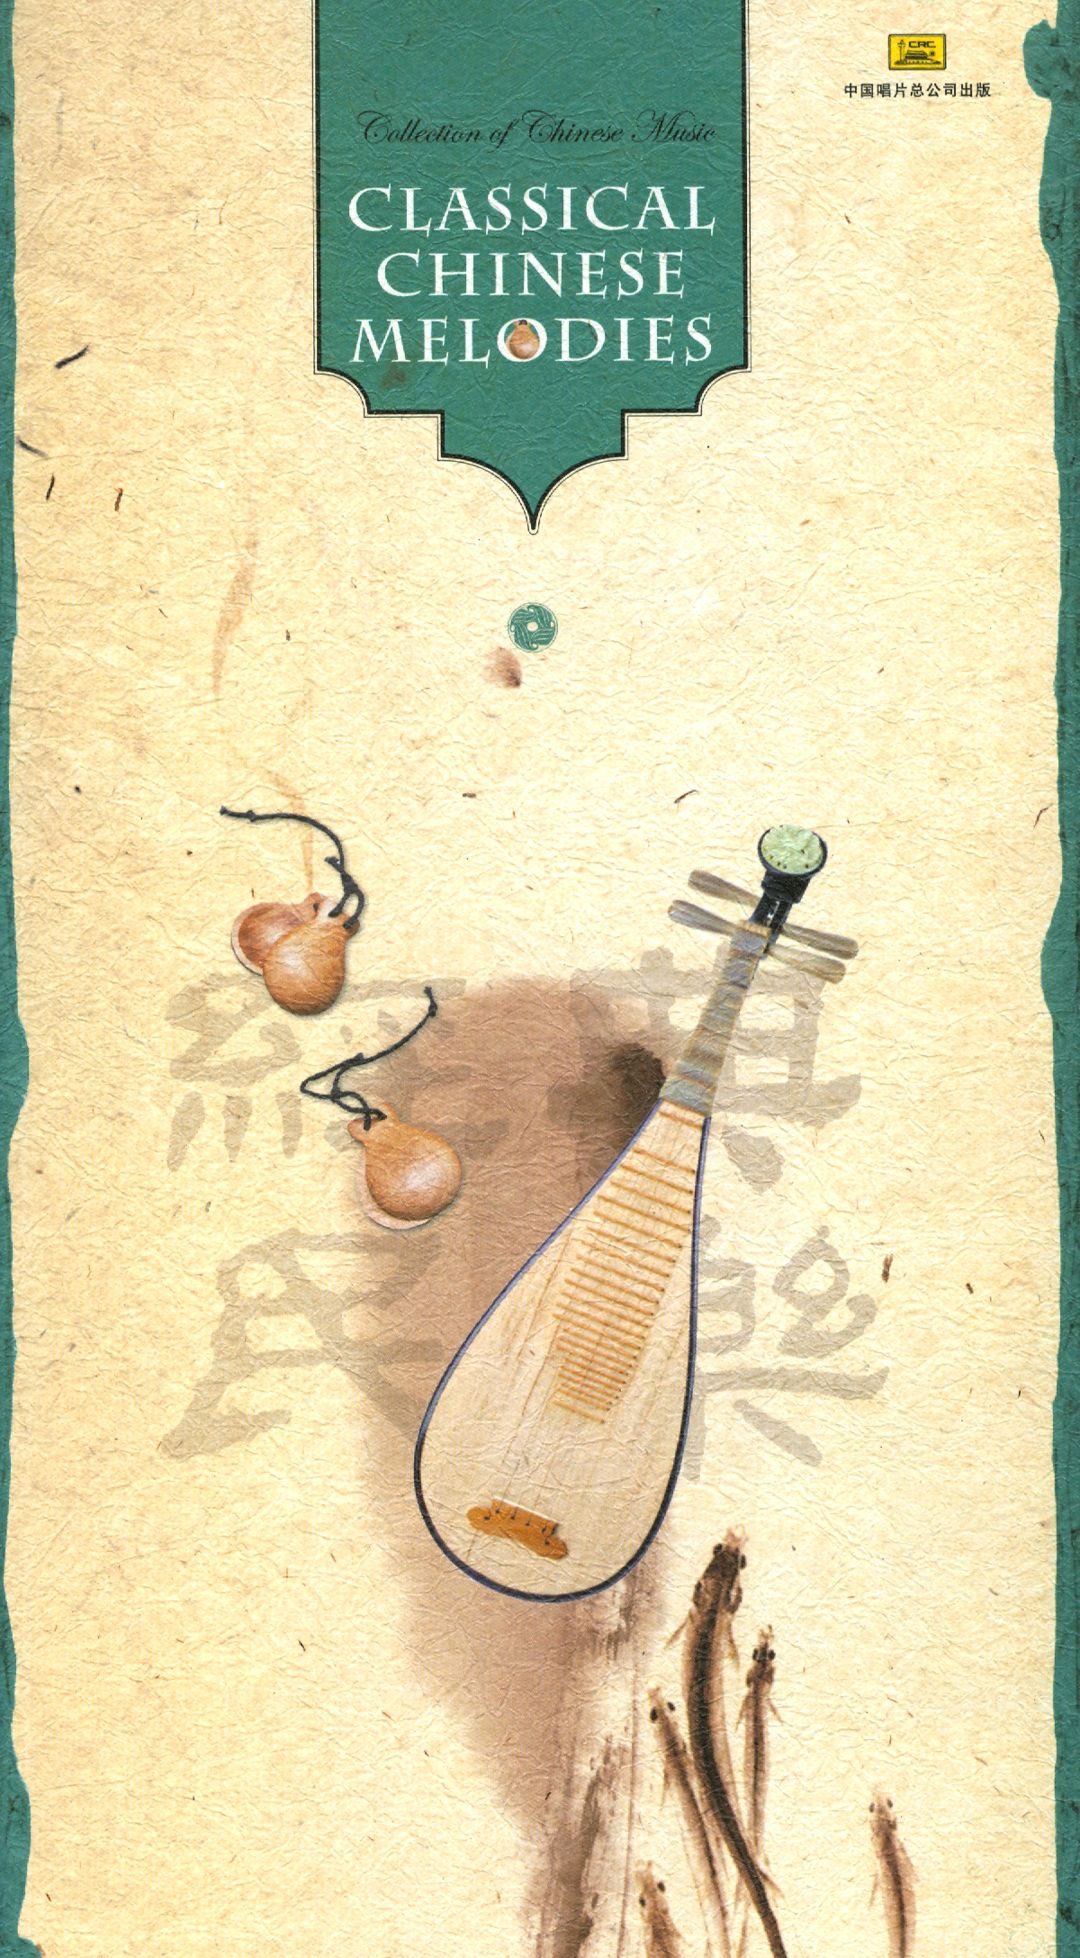 Classical Chinese Melodies